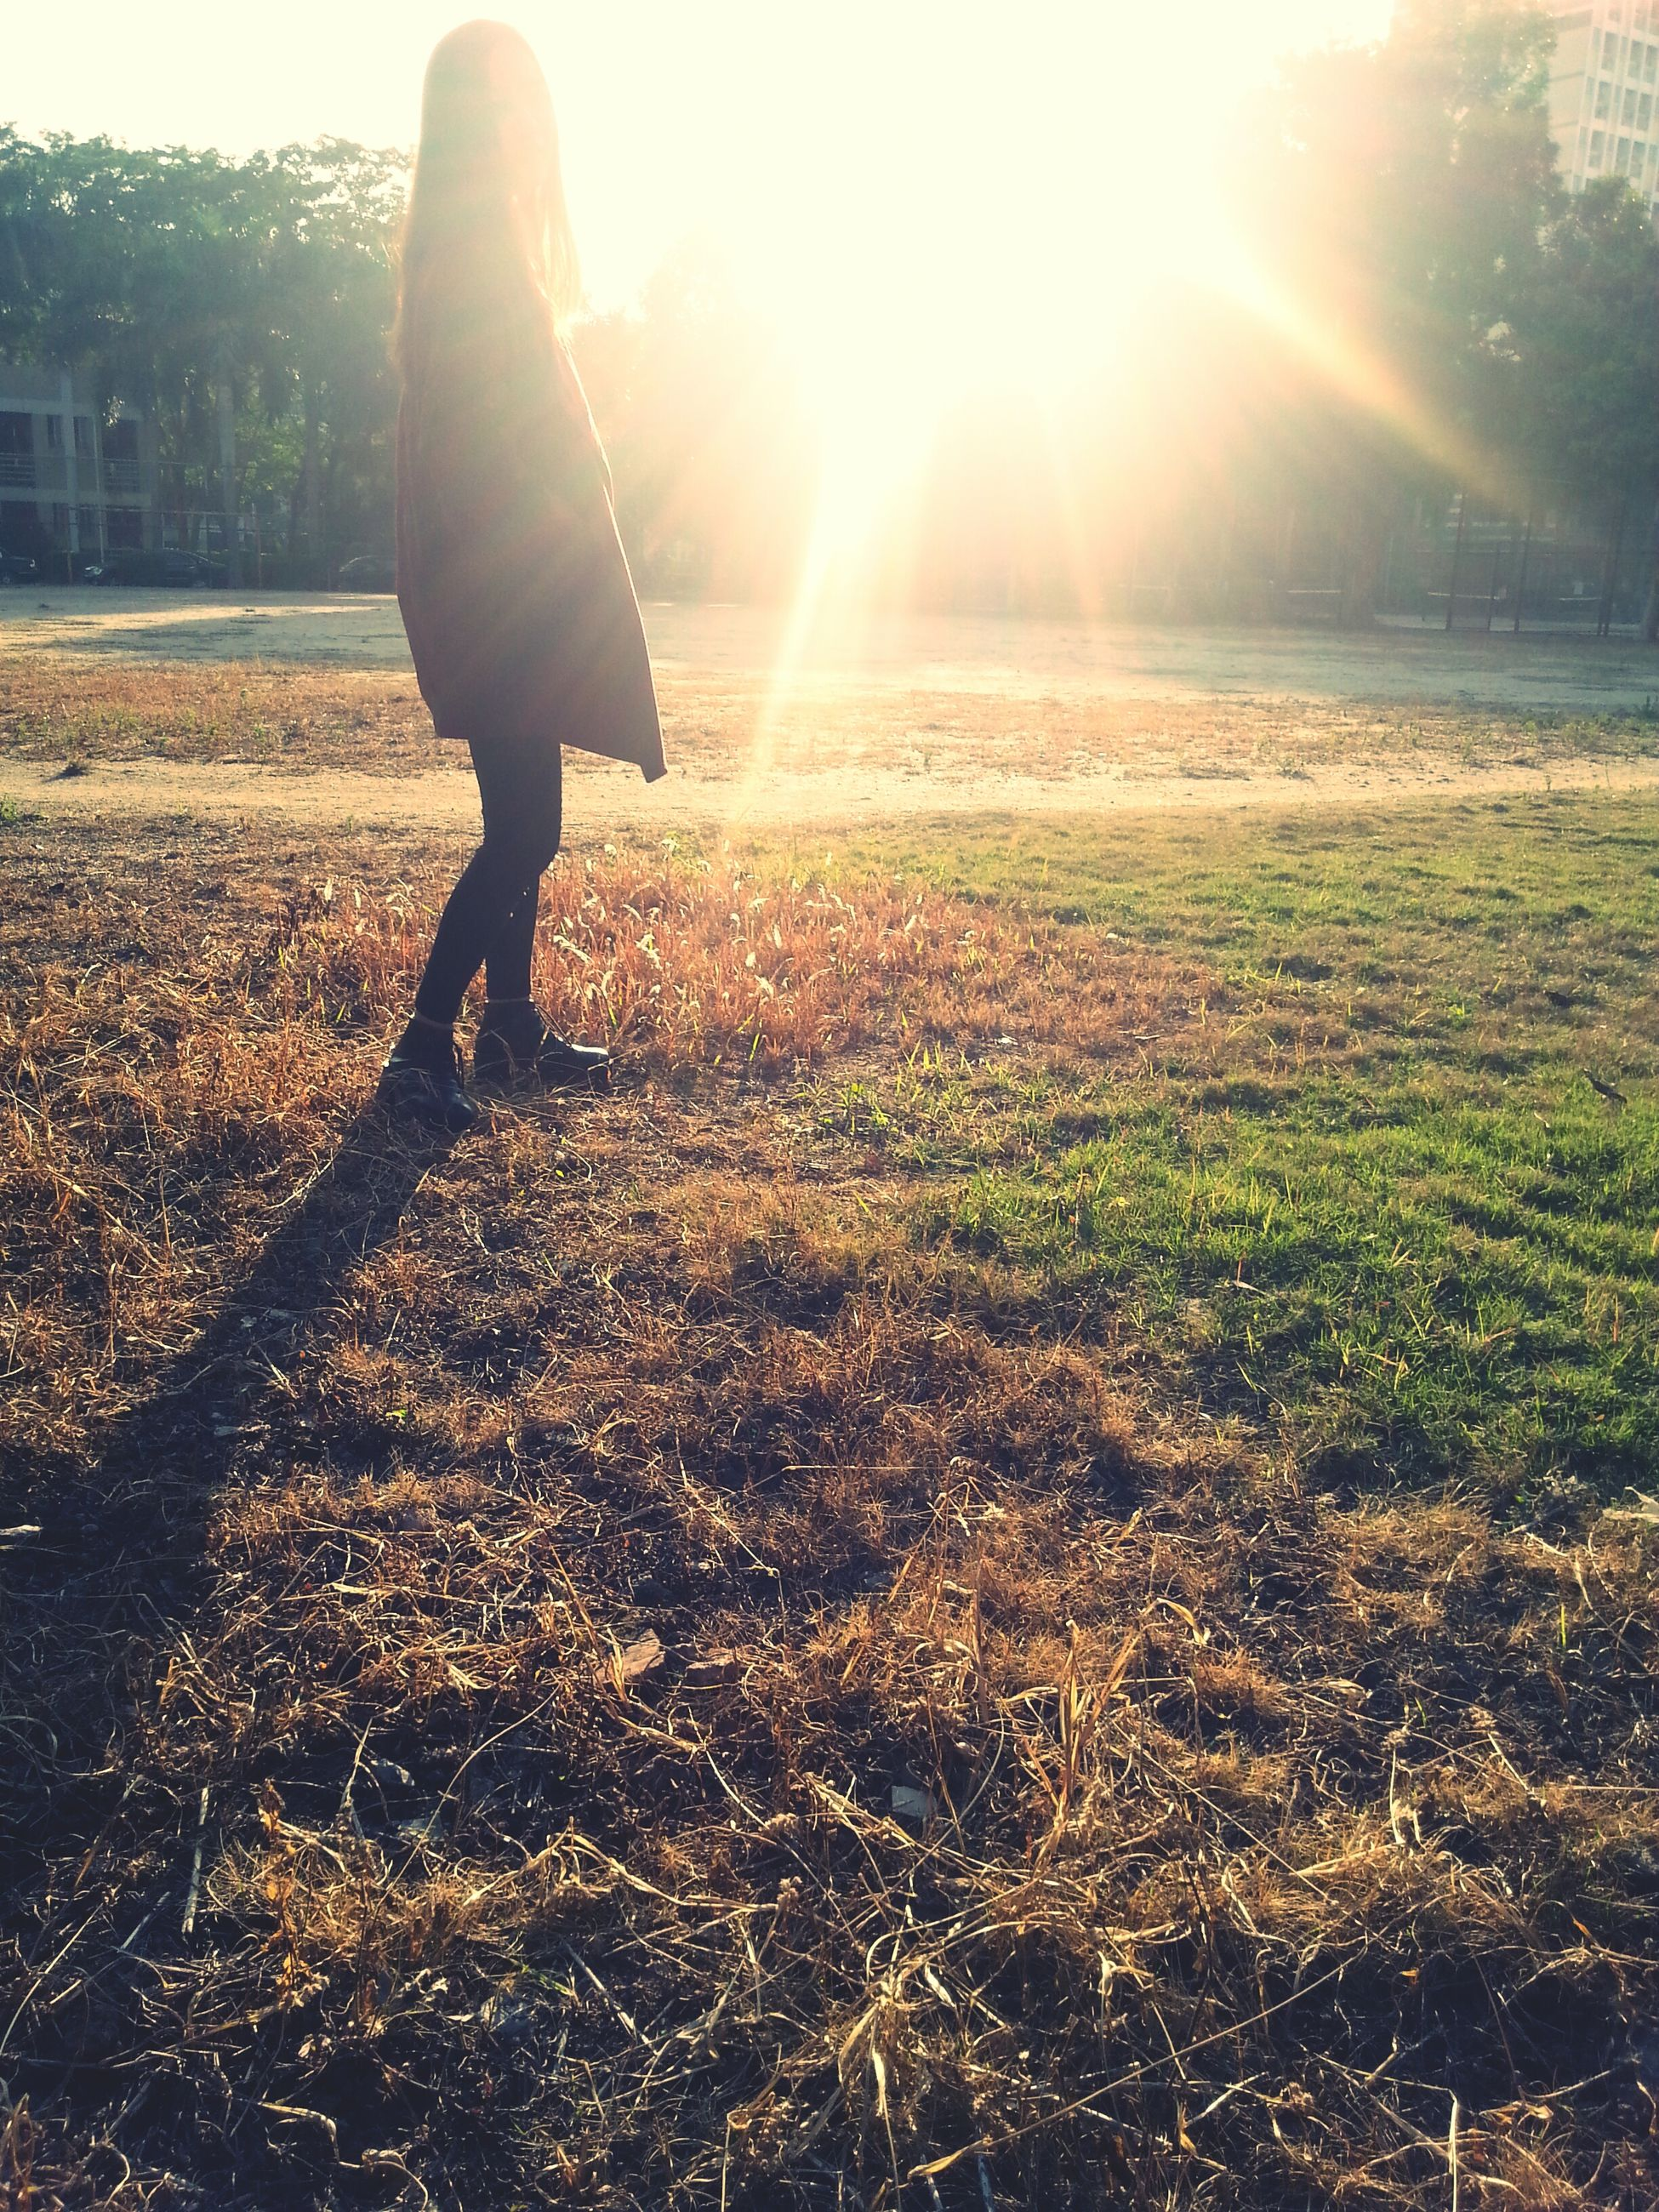 sun, lifestyles, sunlight, leisure activity, sunbeam, lens flare, walking, low section, men, standing, field, full length, rear view, sunny, person, shadow, casual clothing, grass